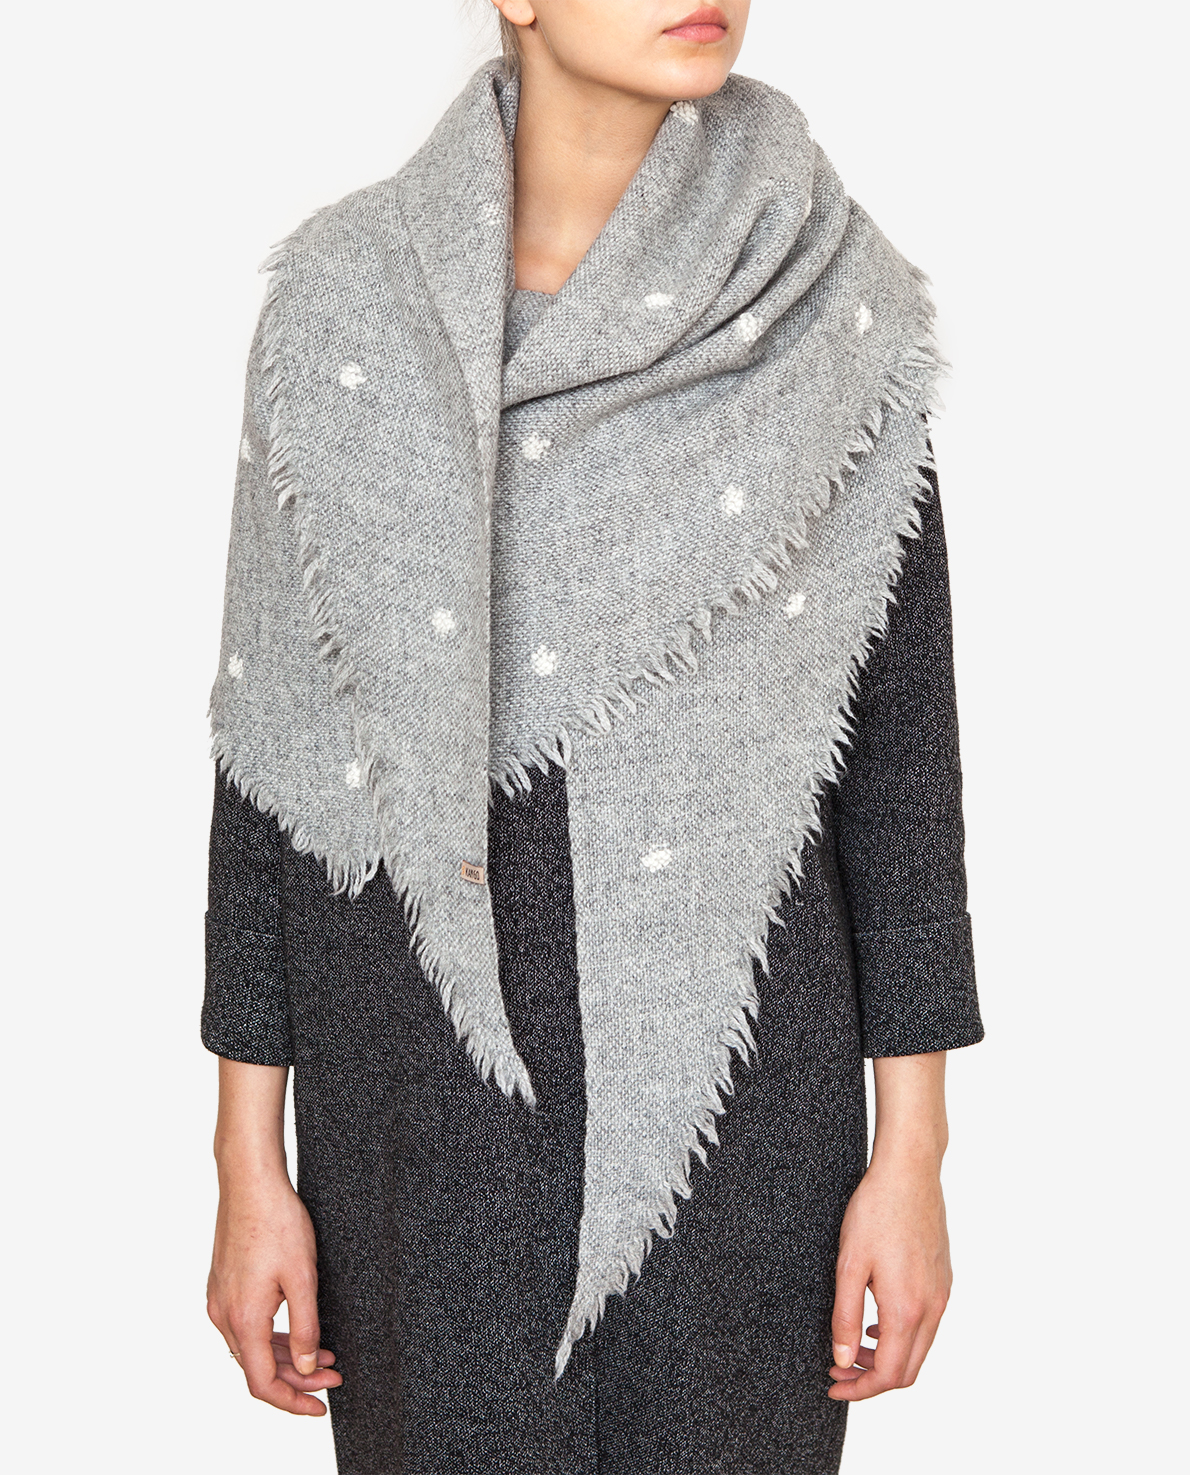 Shawl with white dots